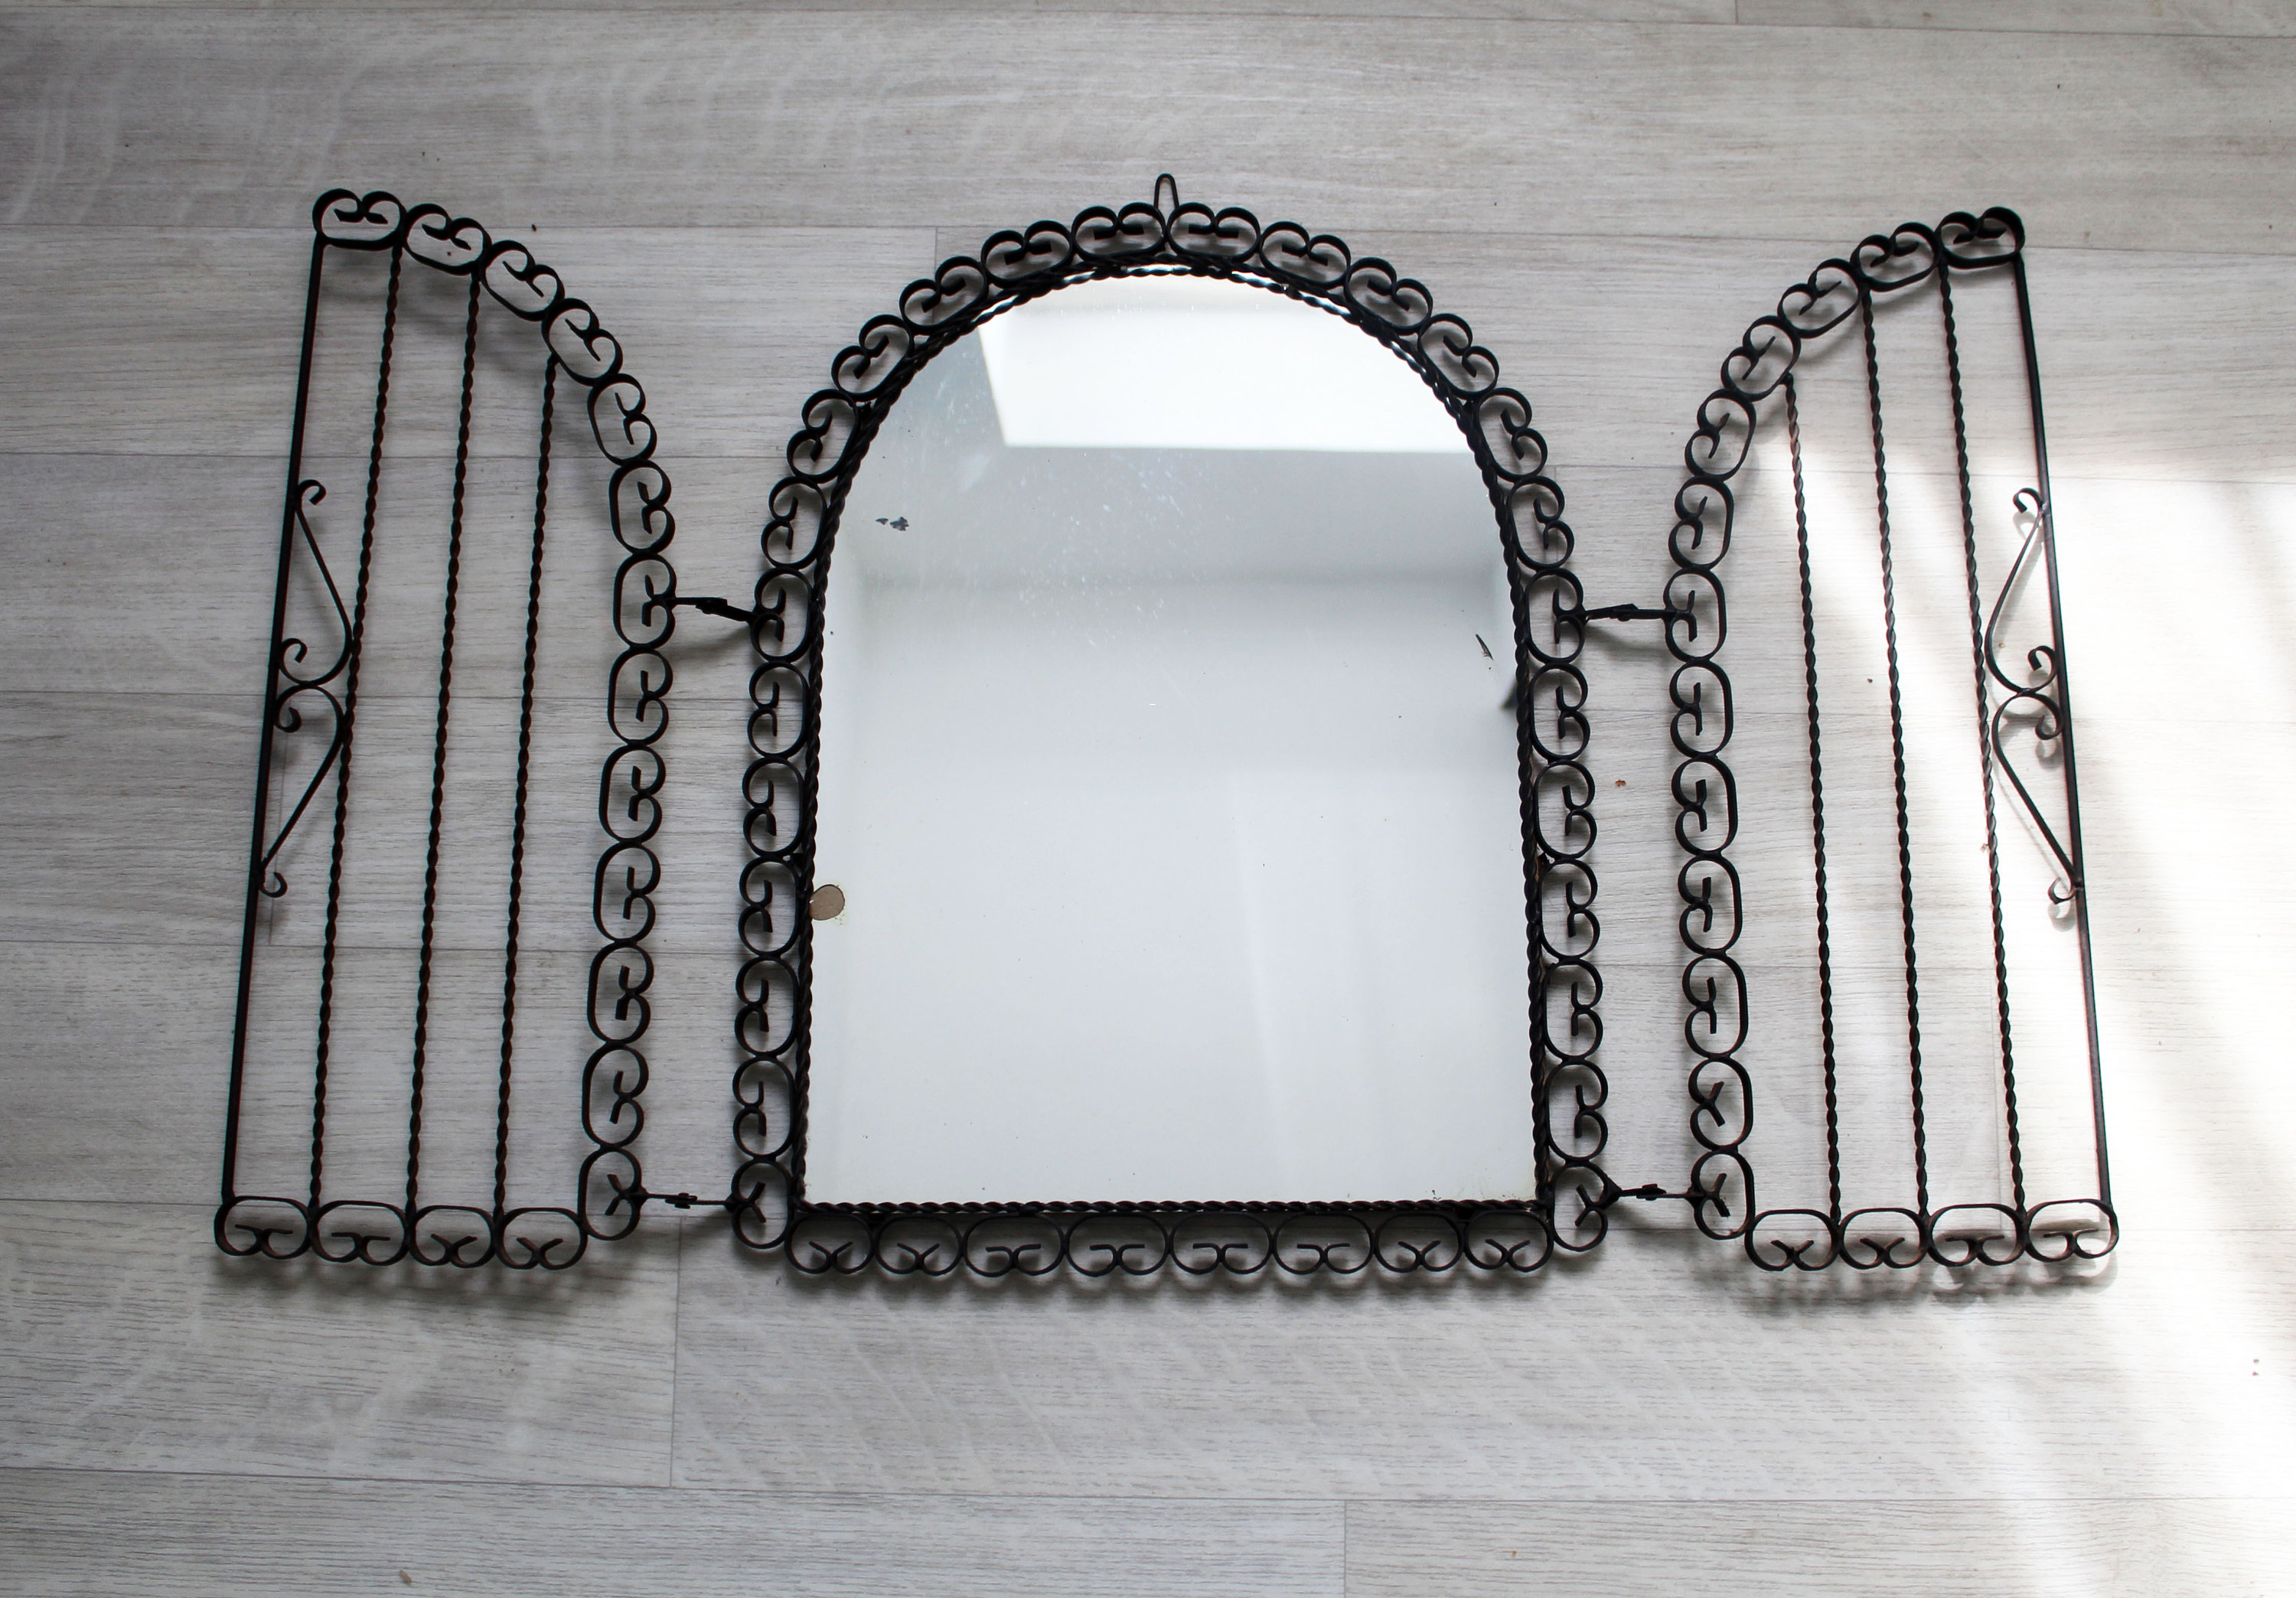 2020 Large Vintage Wrought Iron Mirror With Hinged Doors, Outdoor Iron Mirror, Spanish Vintage Mirror, Wall Hanging Rustic Decor, Arch Mirror Regarding Hinged Wall Mirrors (View 11 of 20)